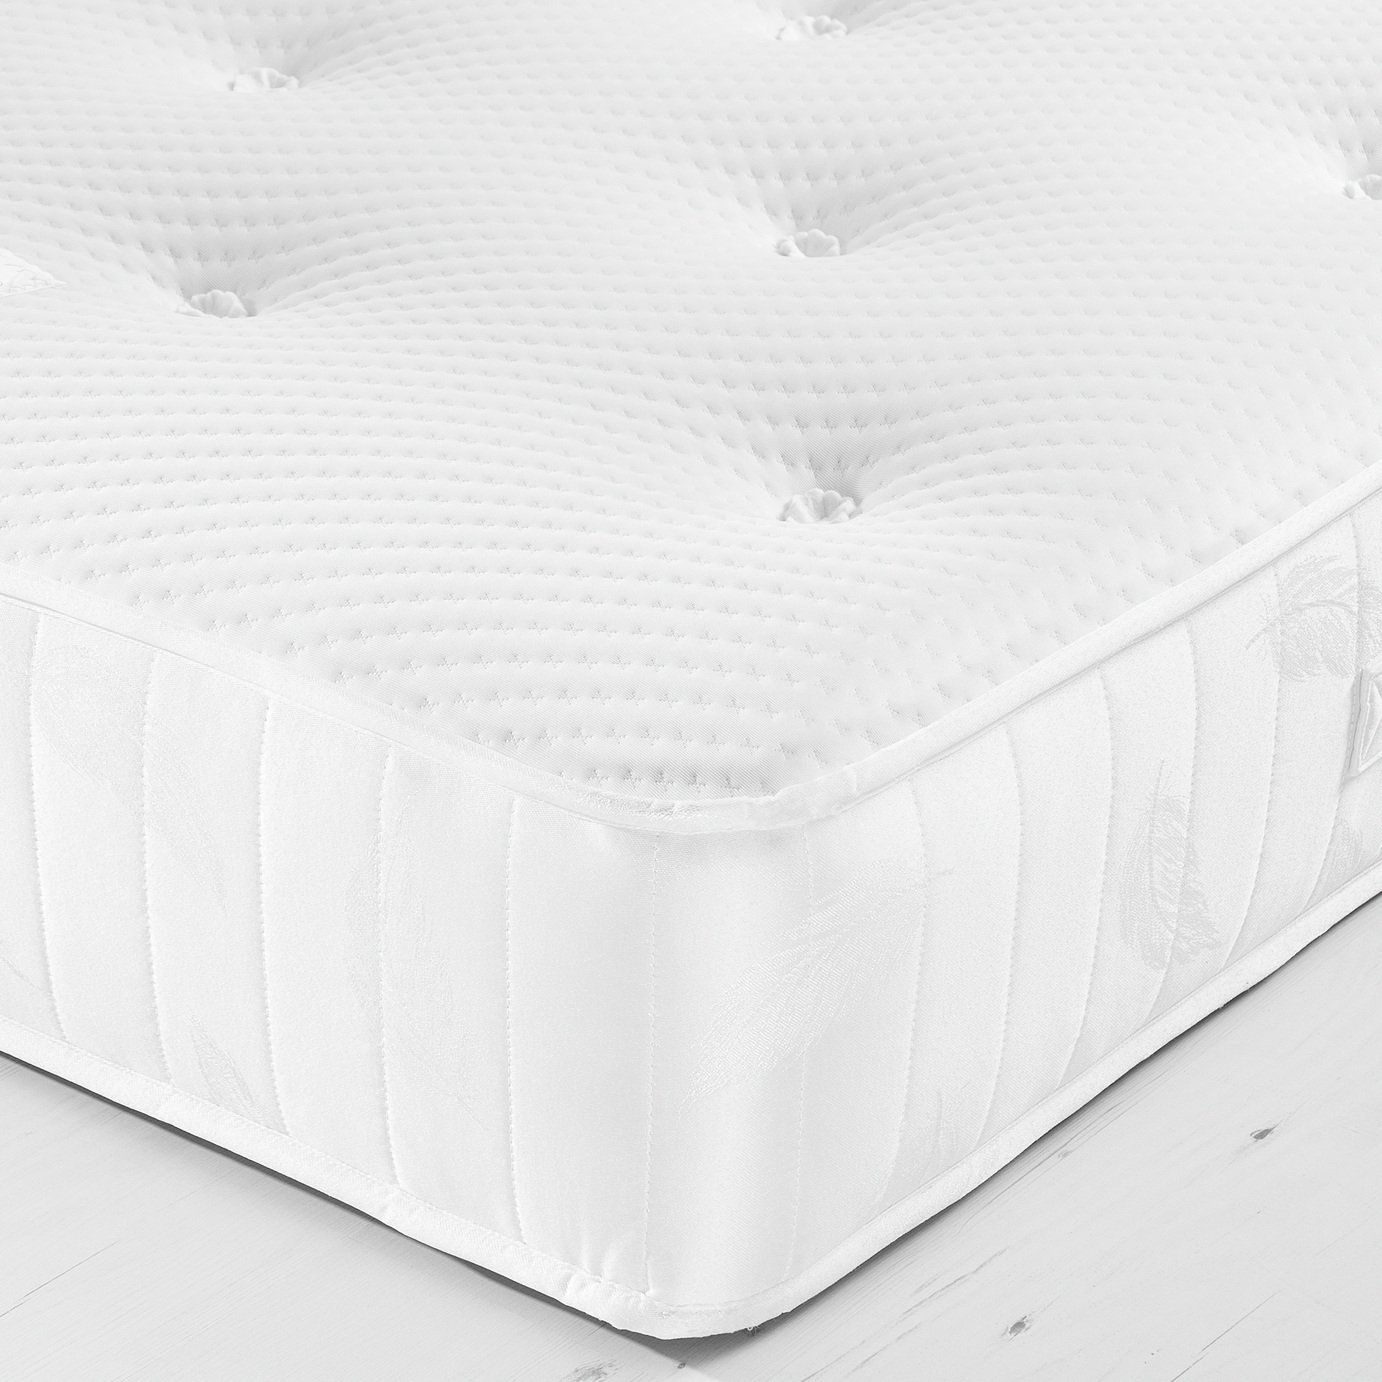 Airsprung Salisbury 1000 Pocket Memory Mattress - Double